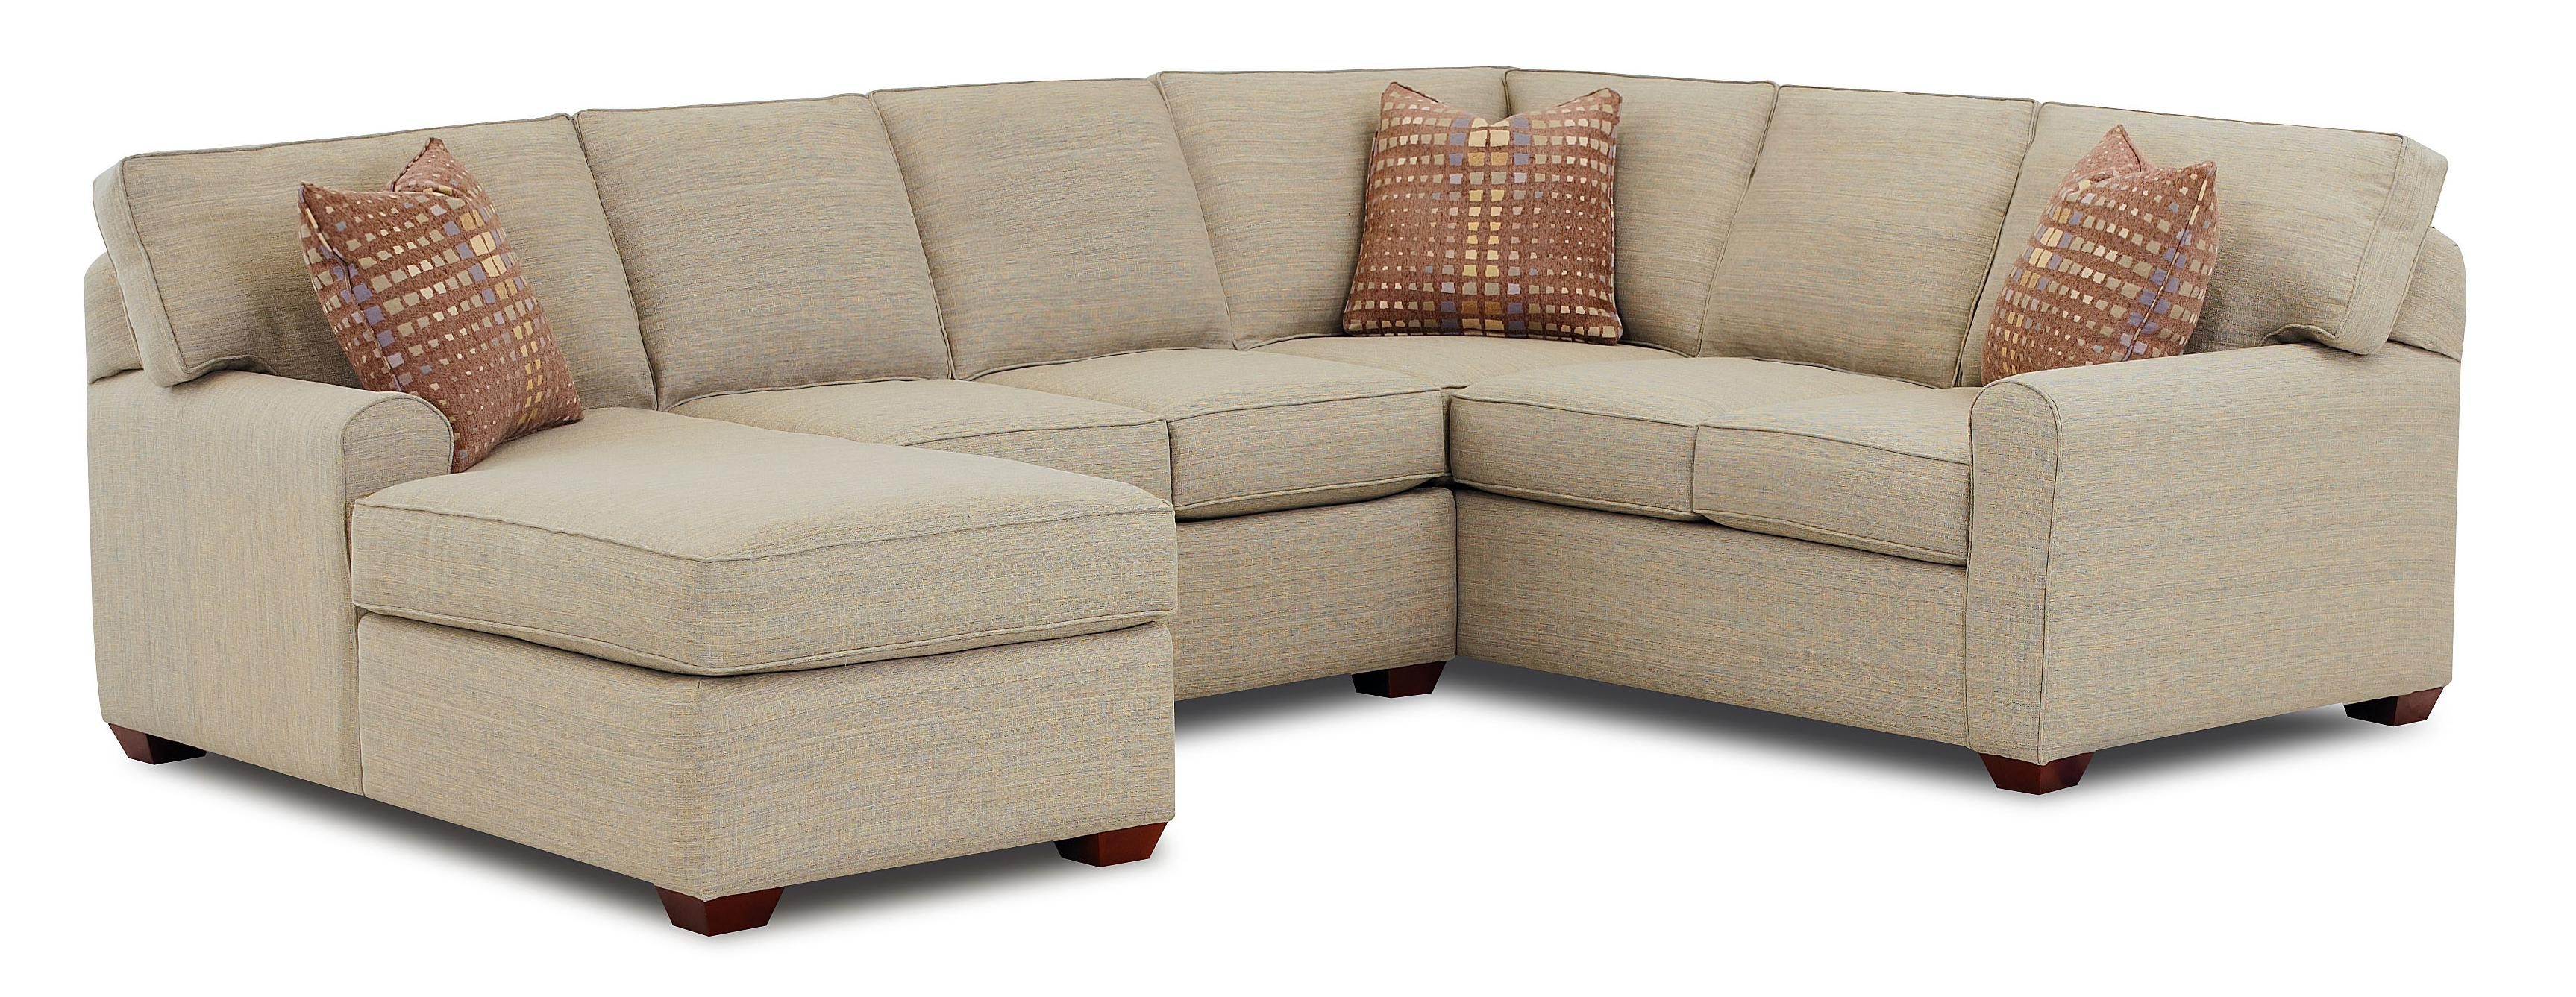 Sectional sofa with left facing chaise lounge for Chaise lounge couch